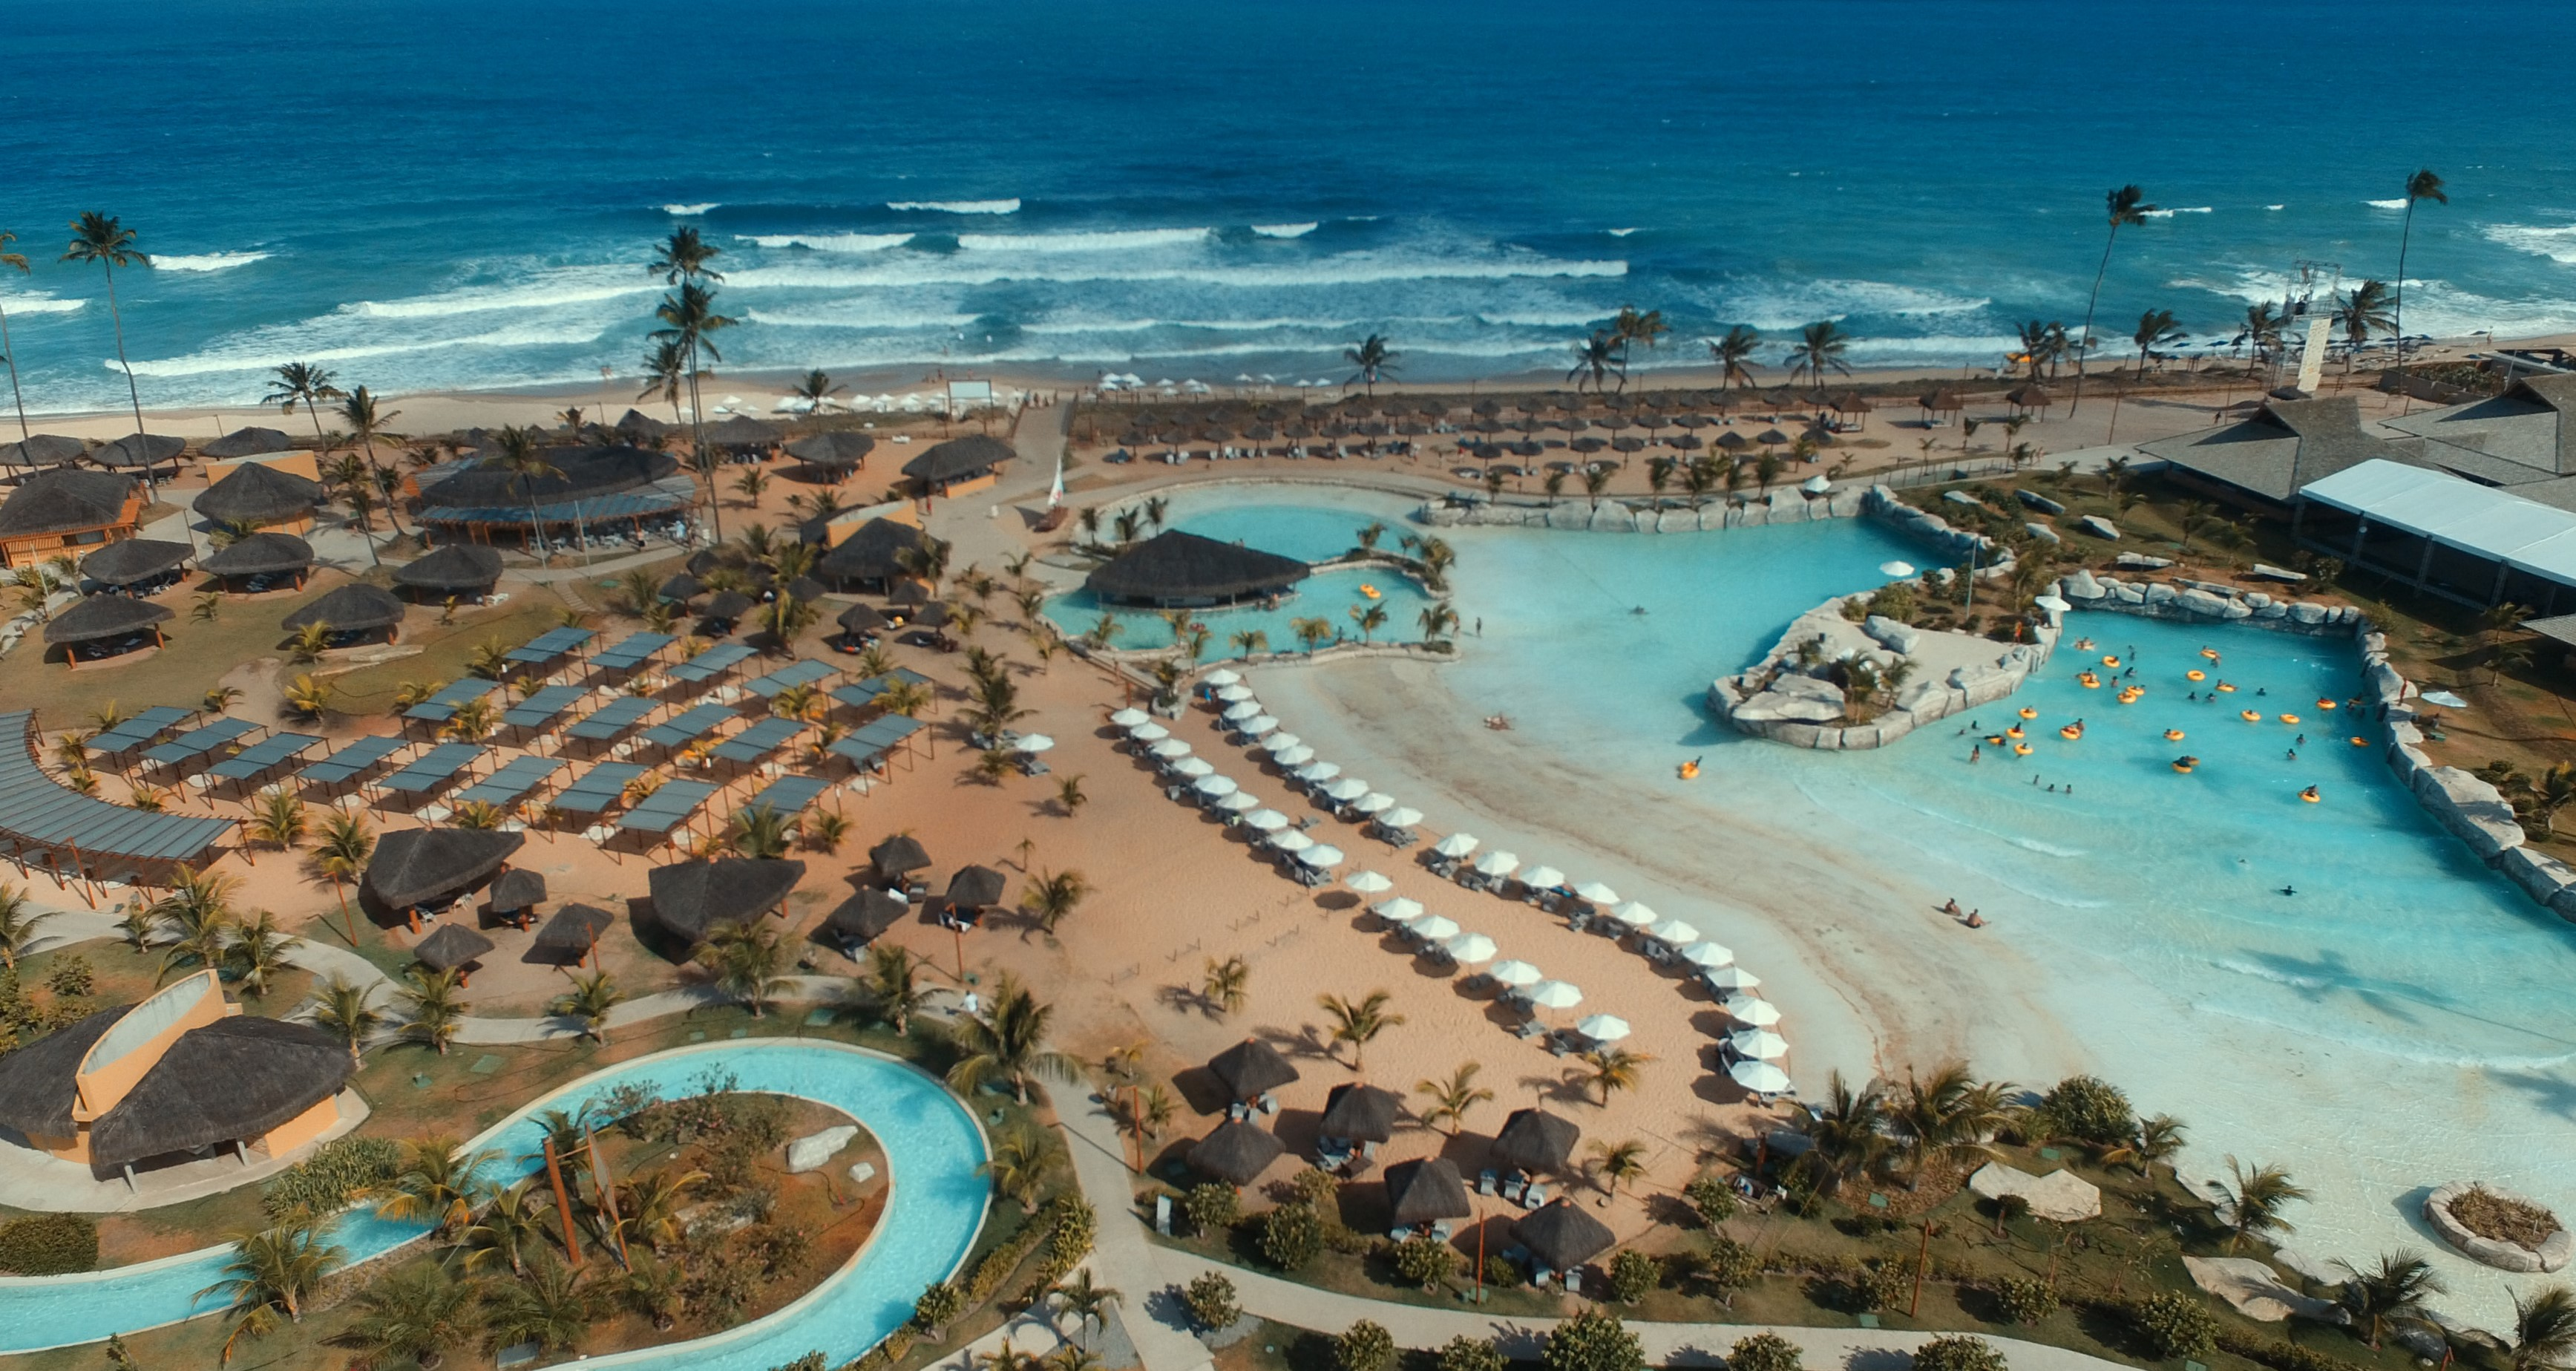 Dia dos Pais no Enotel All Inclusive Resort